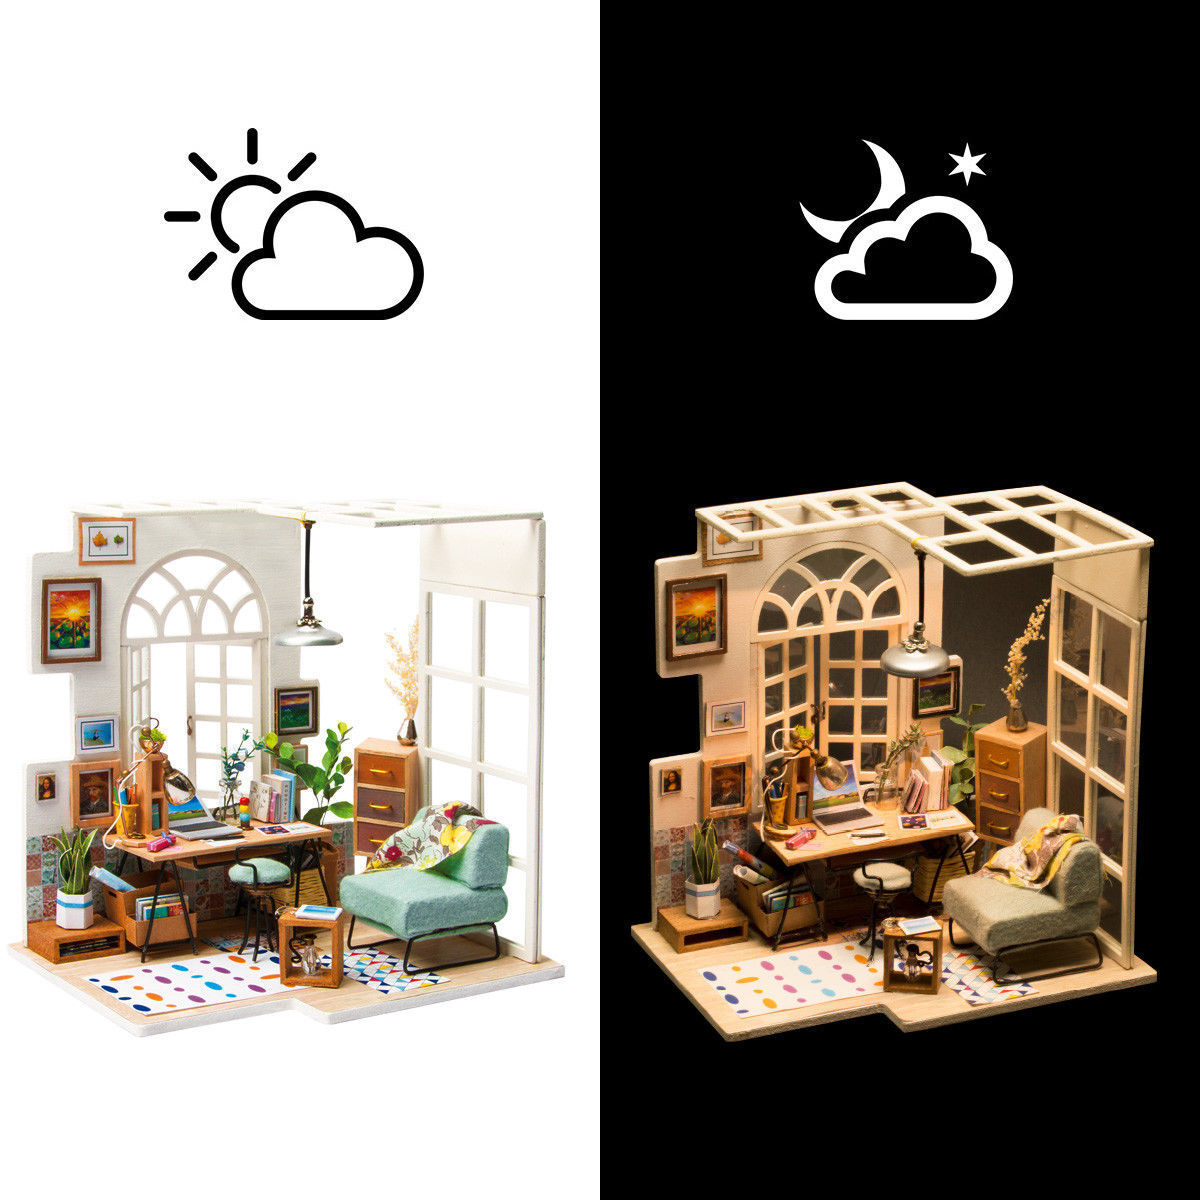 ROBOTIME DIY Wooden Miniature Dollhouse Kit-Handcraft House Project Adult Girls